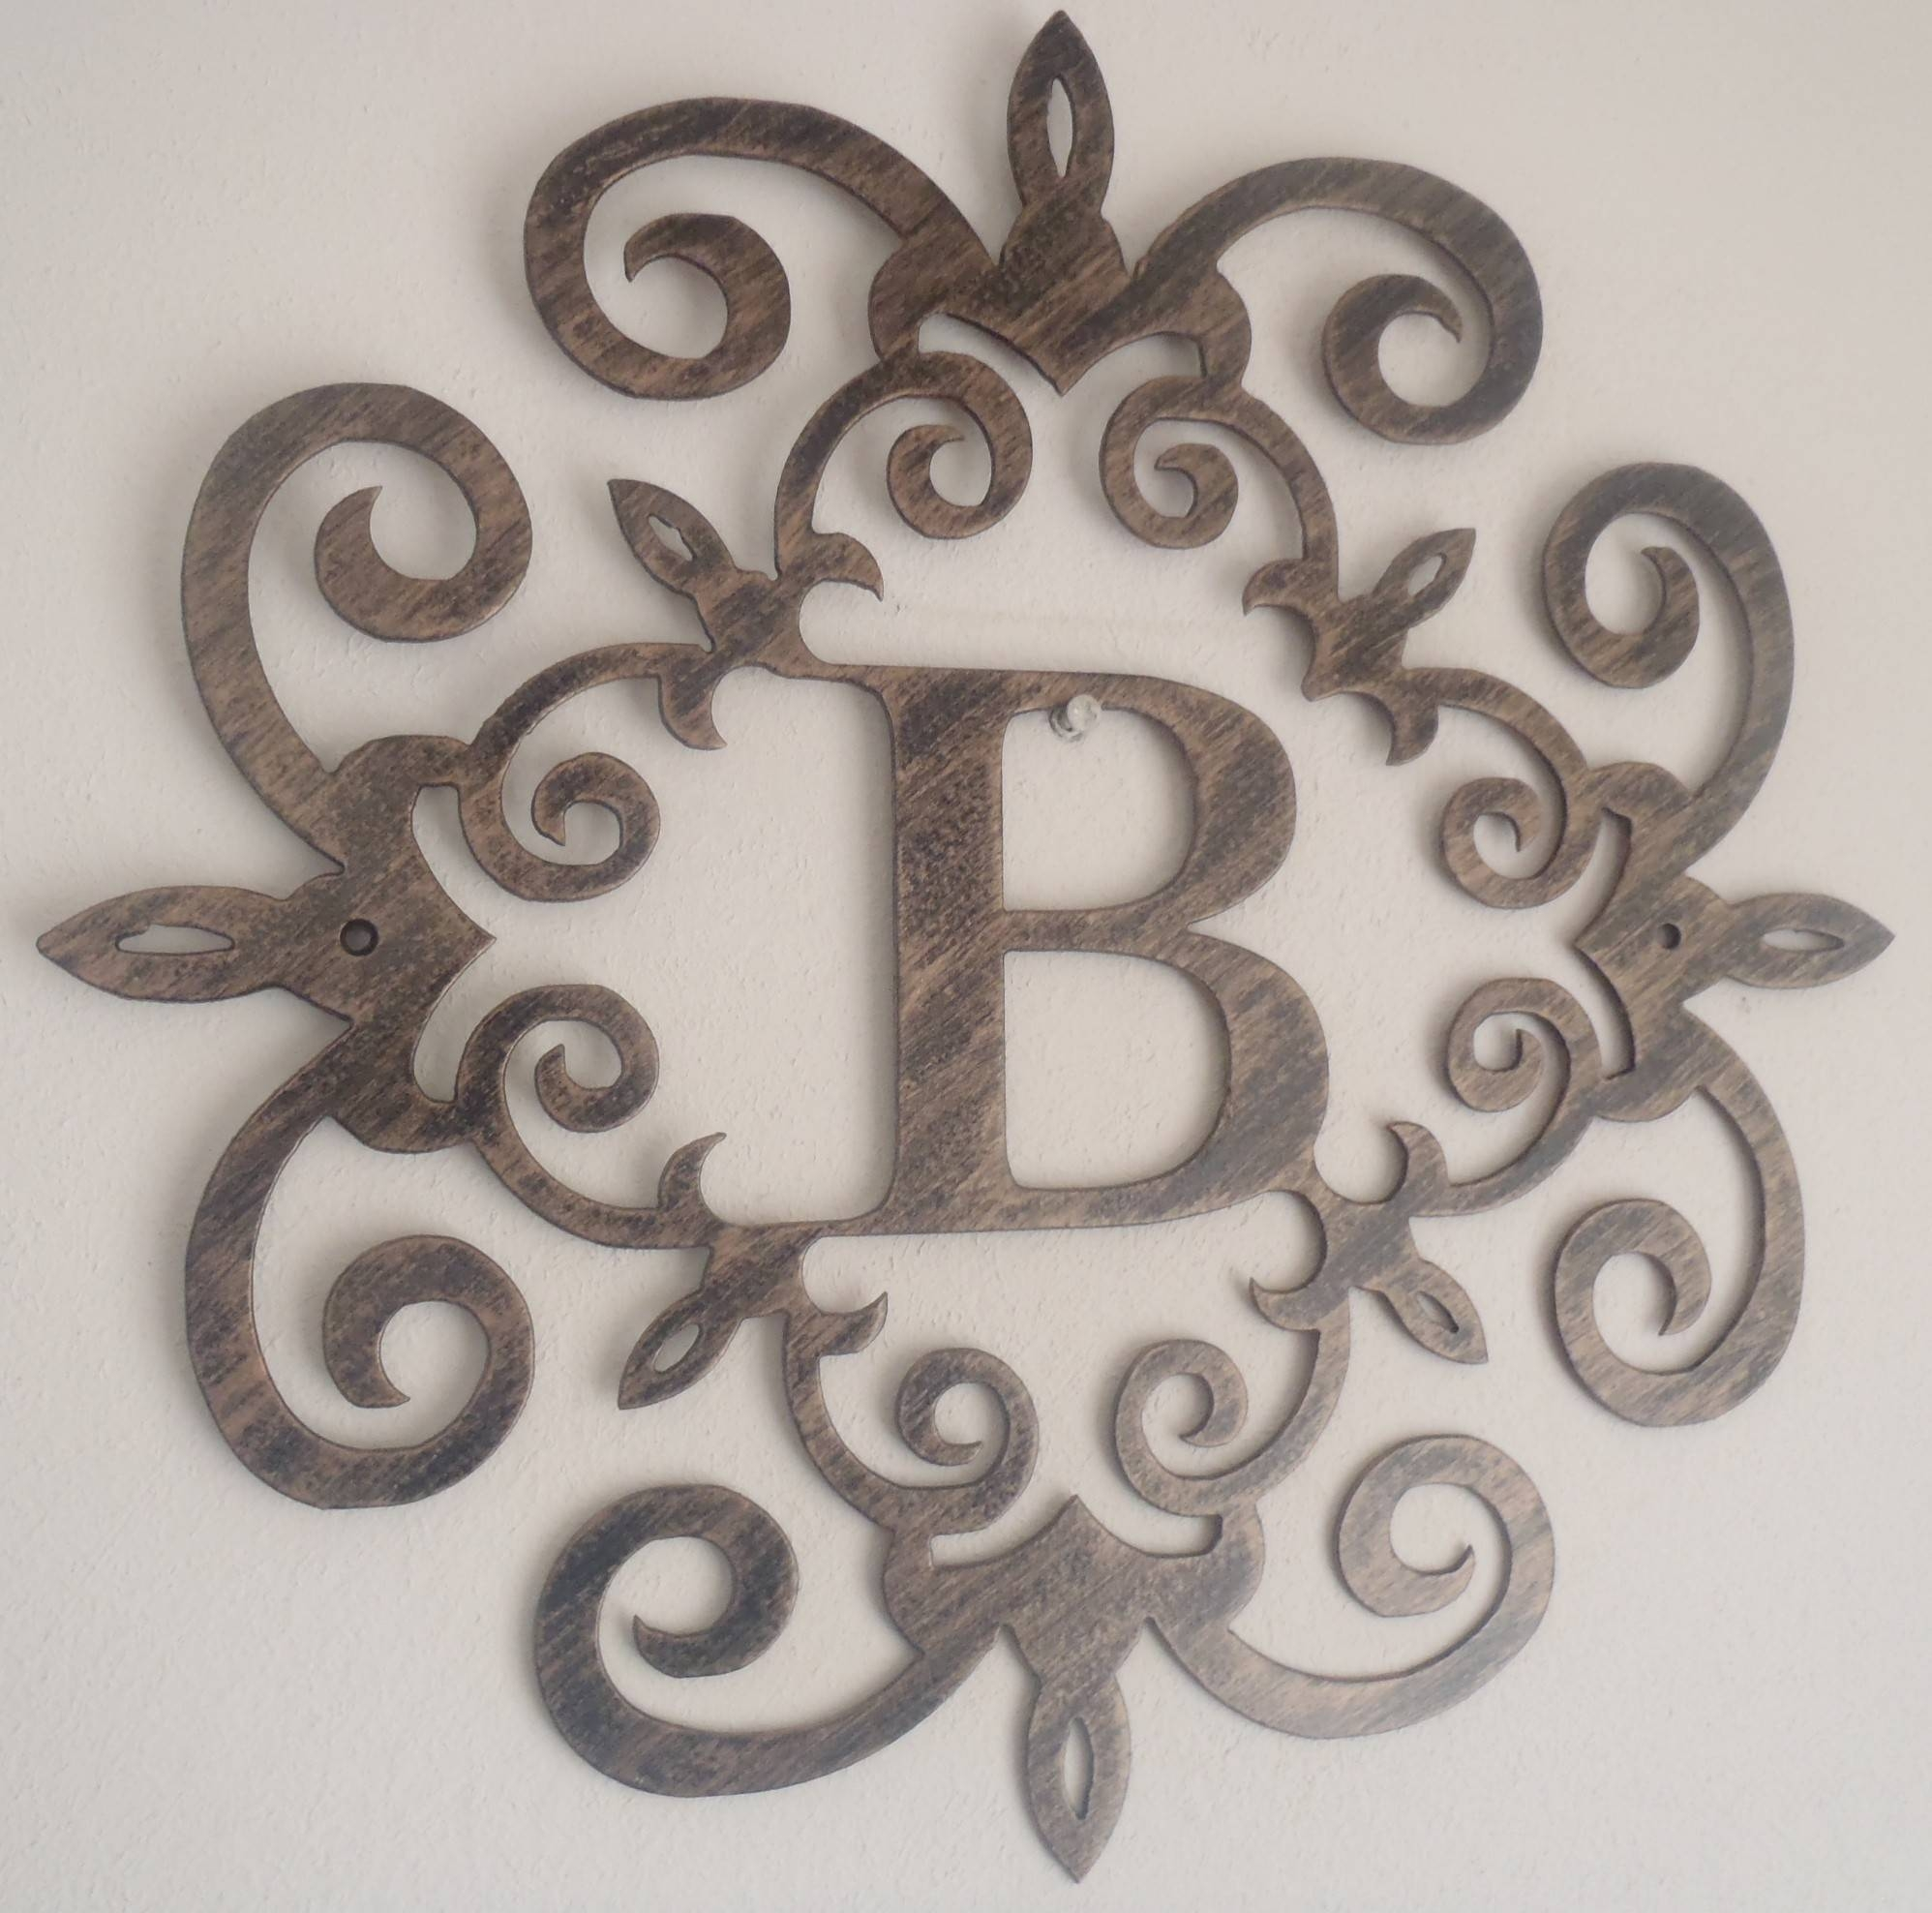 Decorating Large Metal Letters For Wall Decor | Jeffsbakery Within Latest Metal Wall Art Letters (View 1 of 20)